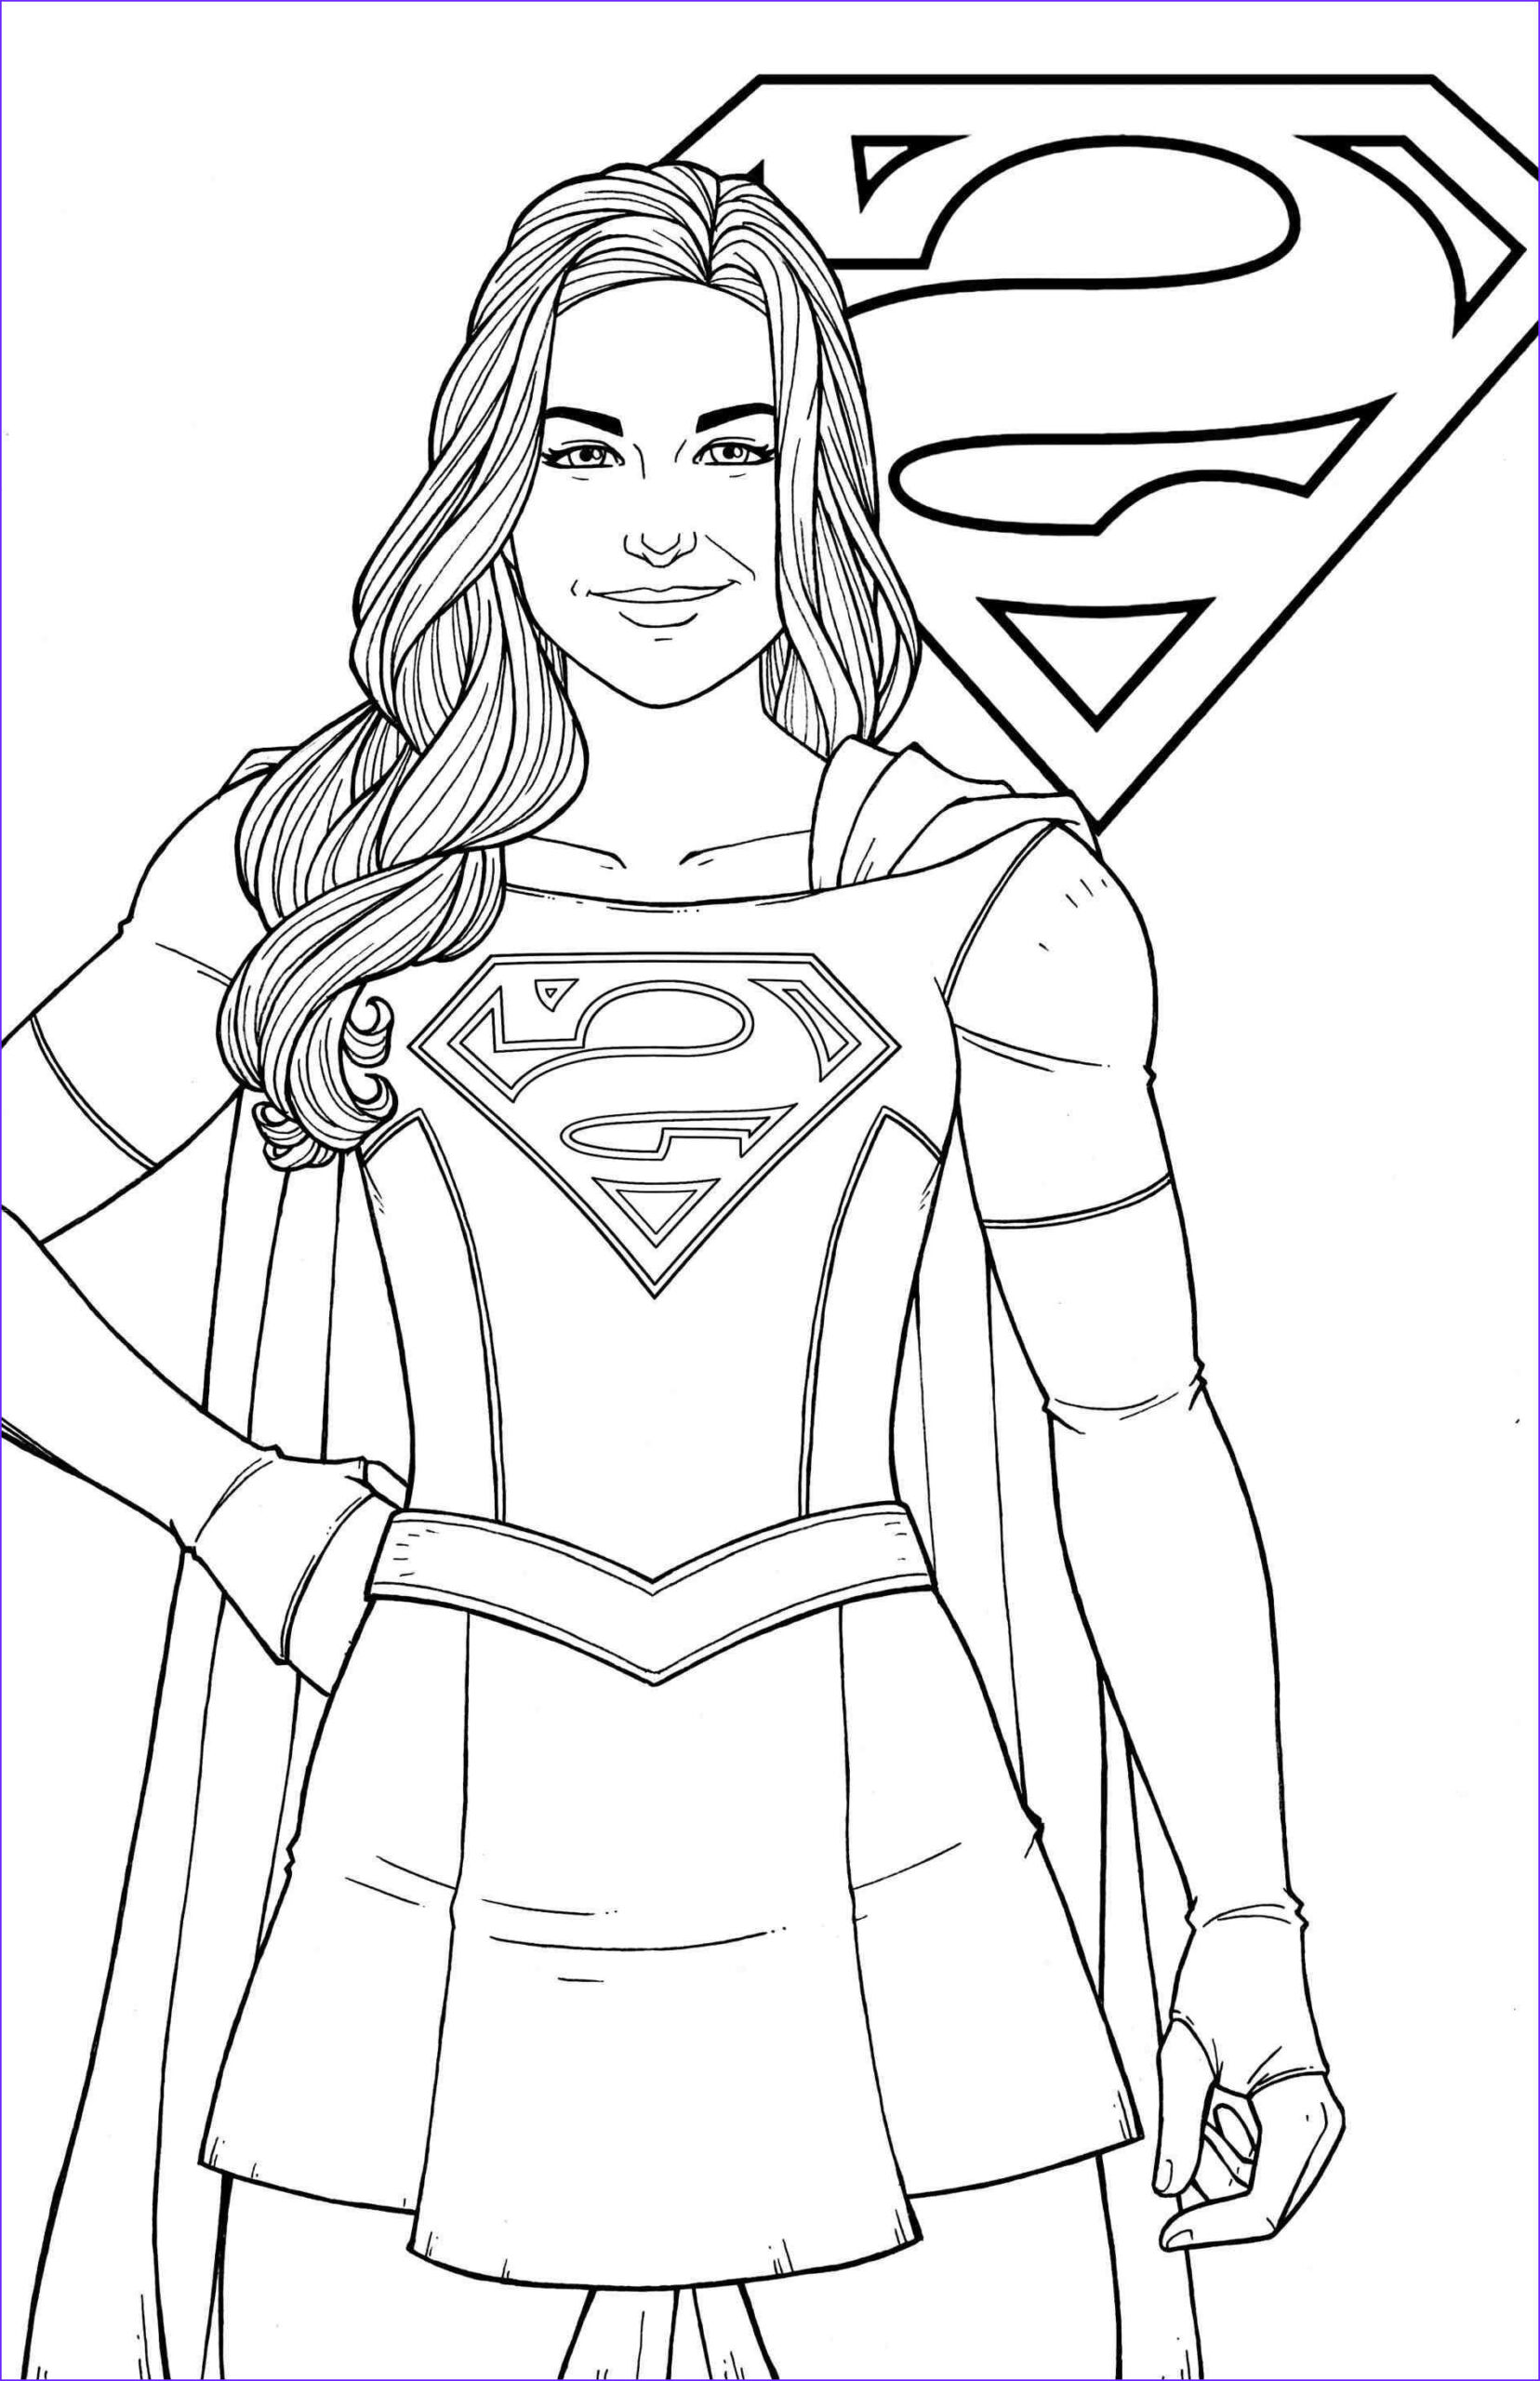 Super Girl Coloring Page Elegant Collection Free Printable Supergirl Coloring Pages Logo and Wonder